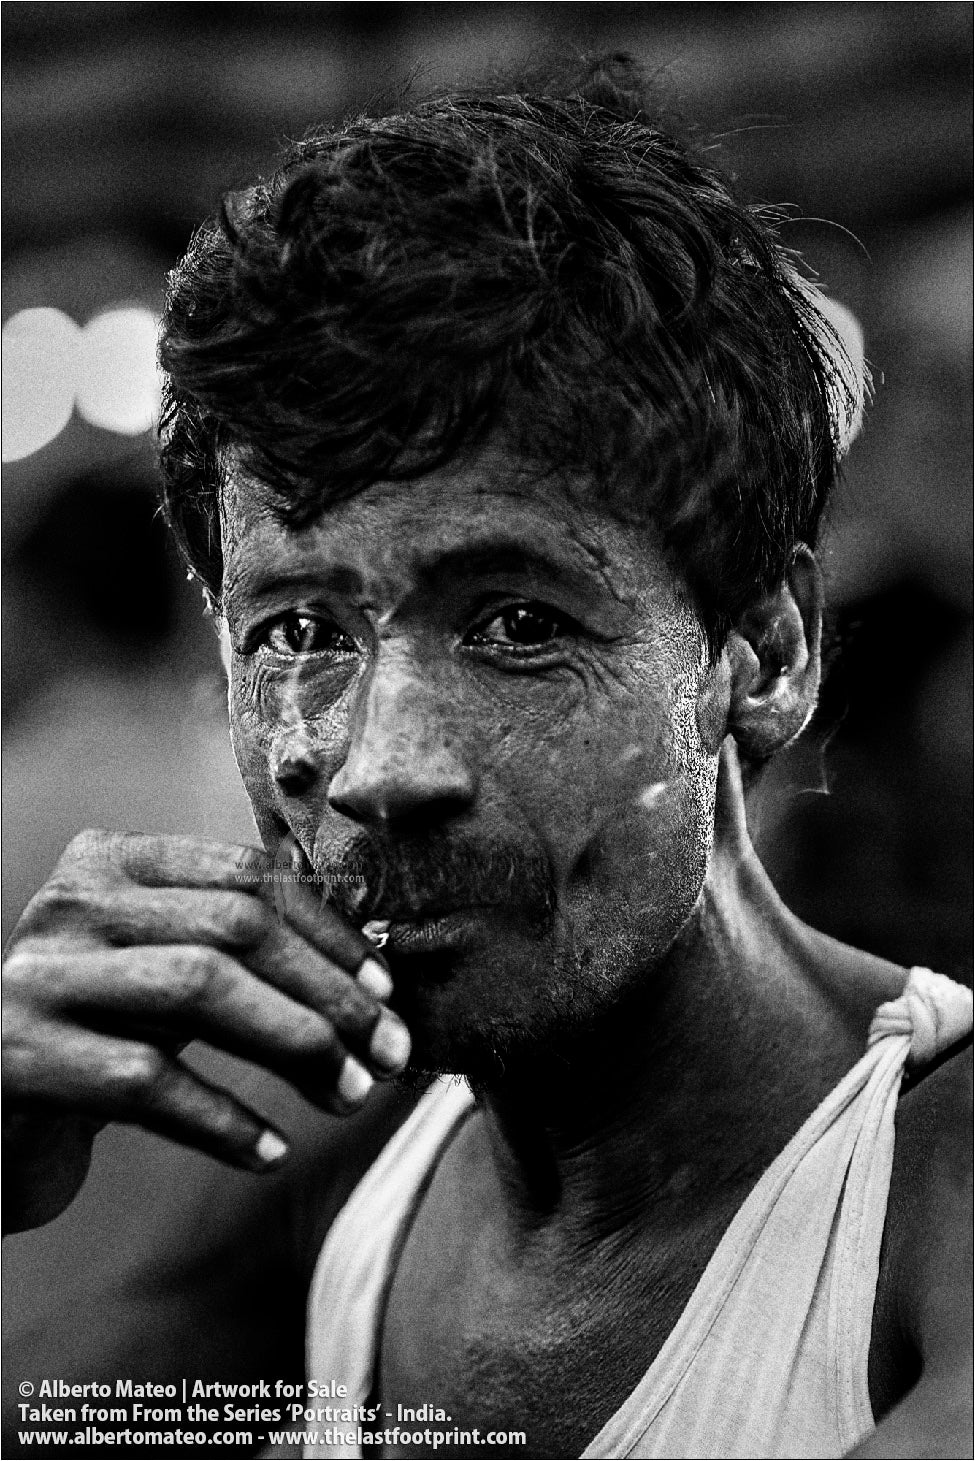 Portrait of smoking Porter, Bara Bazar, Kolkata, India.